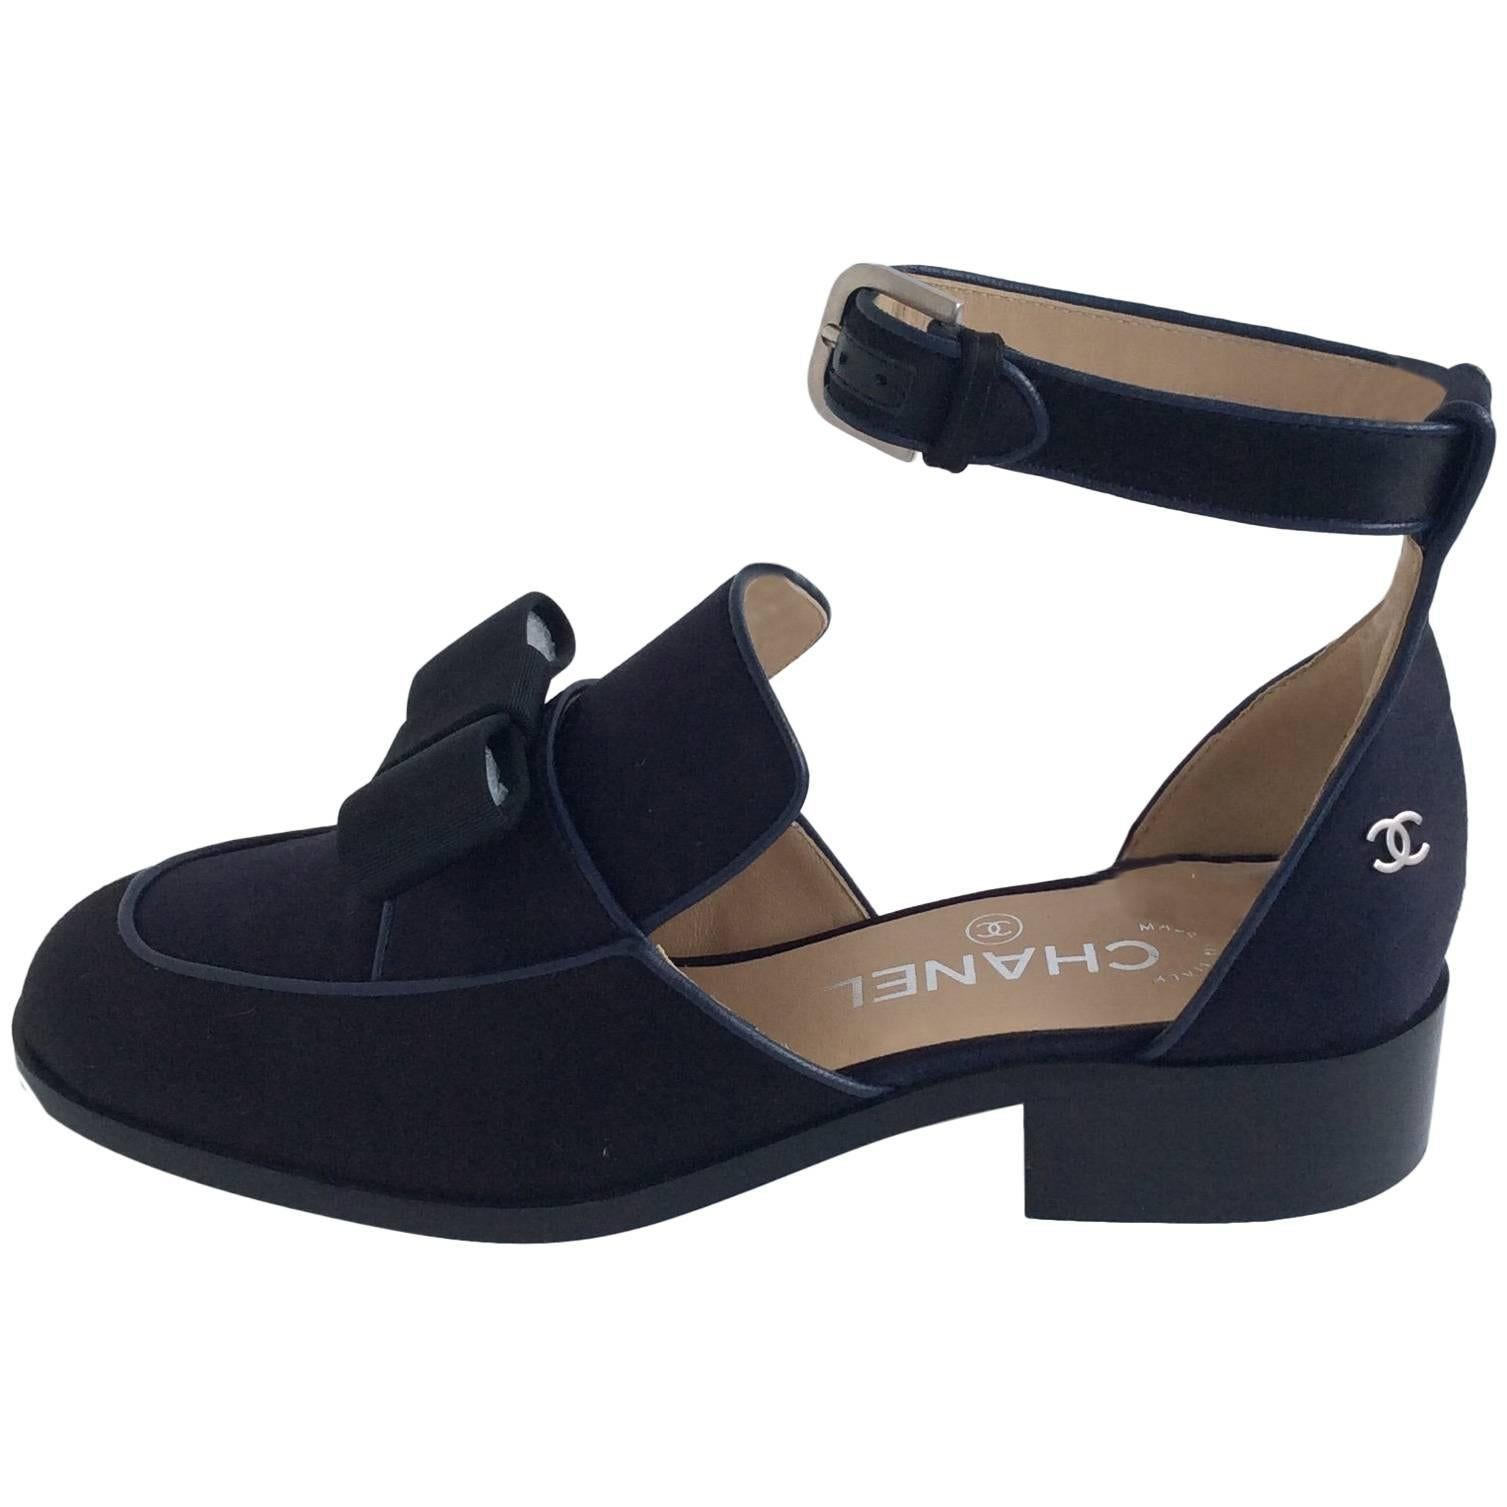 9e12362071ce0a Chanel Black and Navy Satin Sandals With Grosgrain Bows at 1stdibs